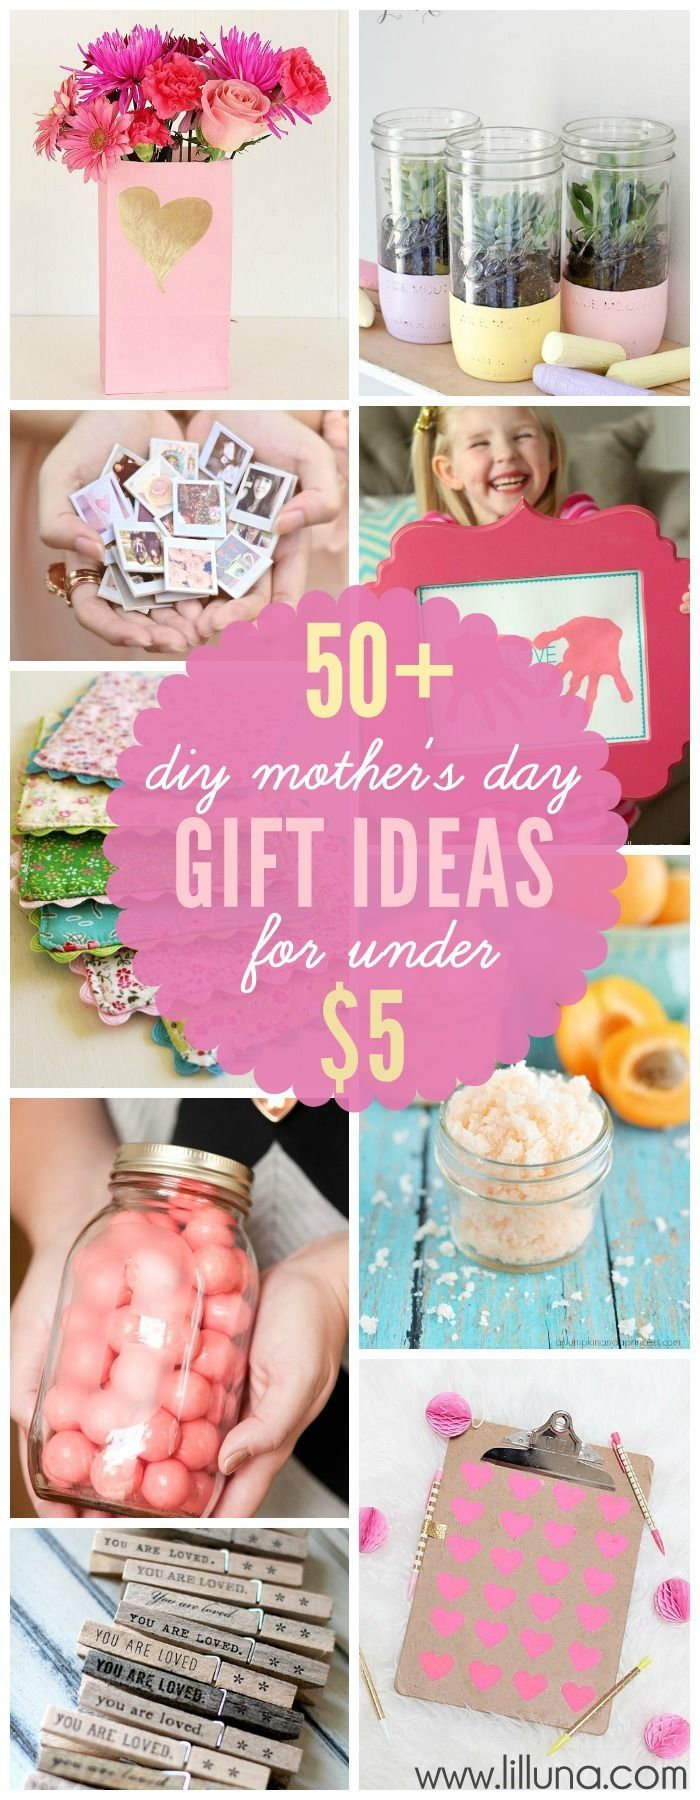 74 best images about diy mothers day gifts on pinterest for Mother s day gift ideas for grandma